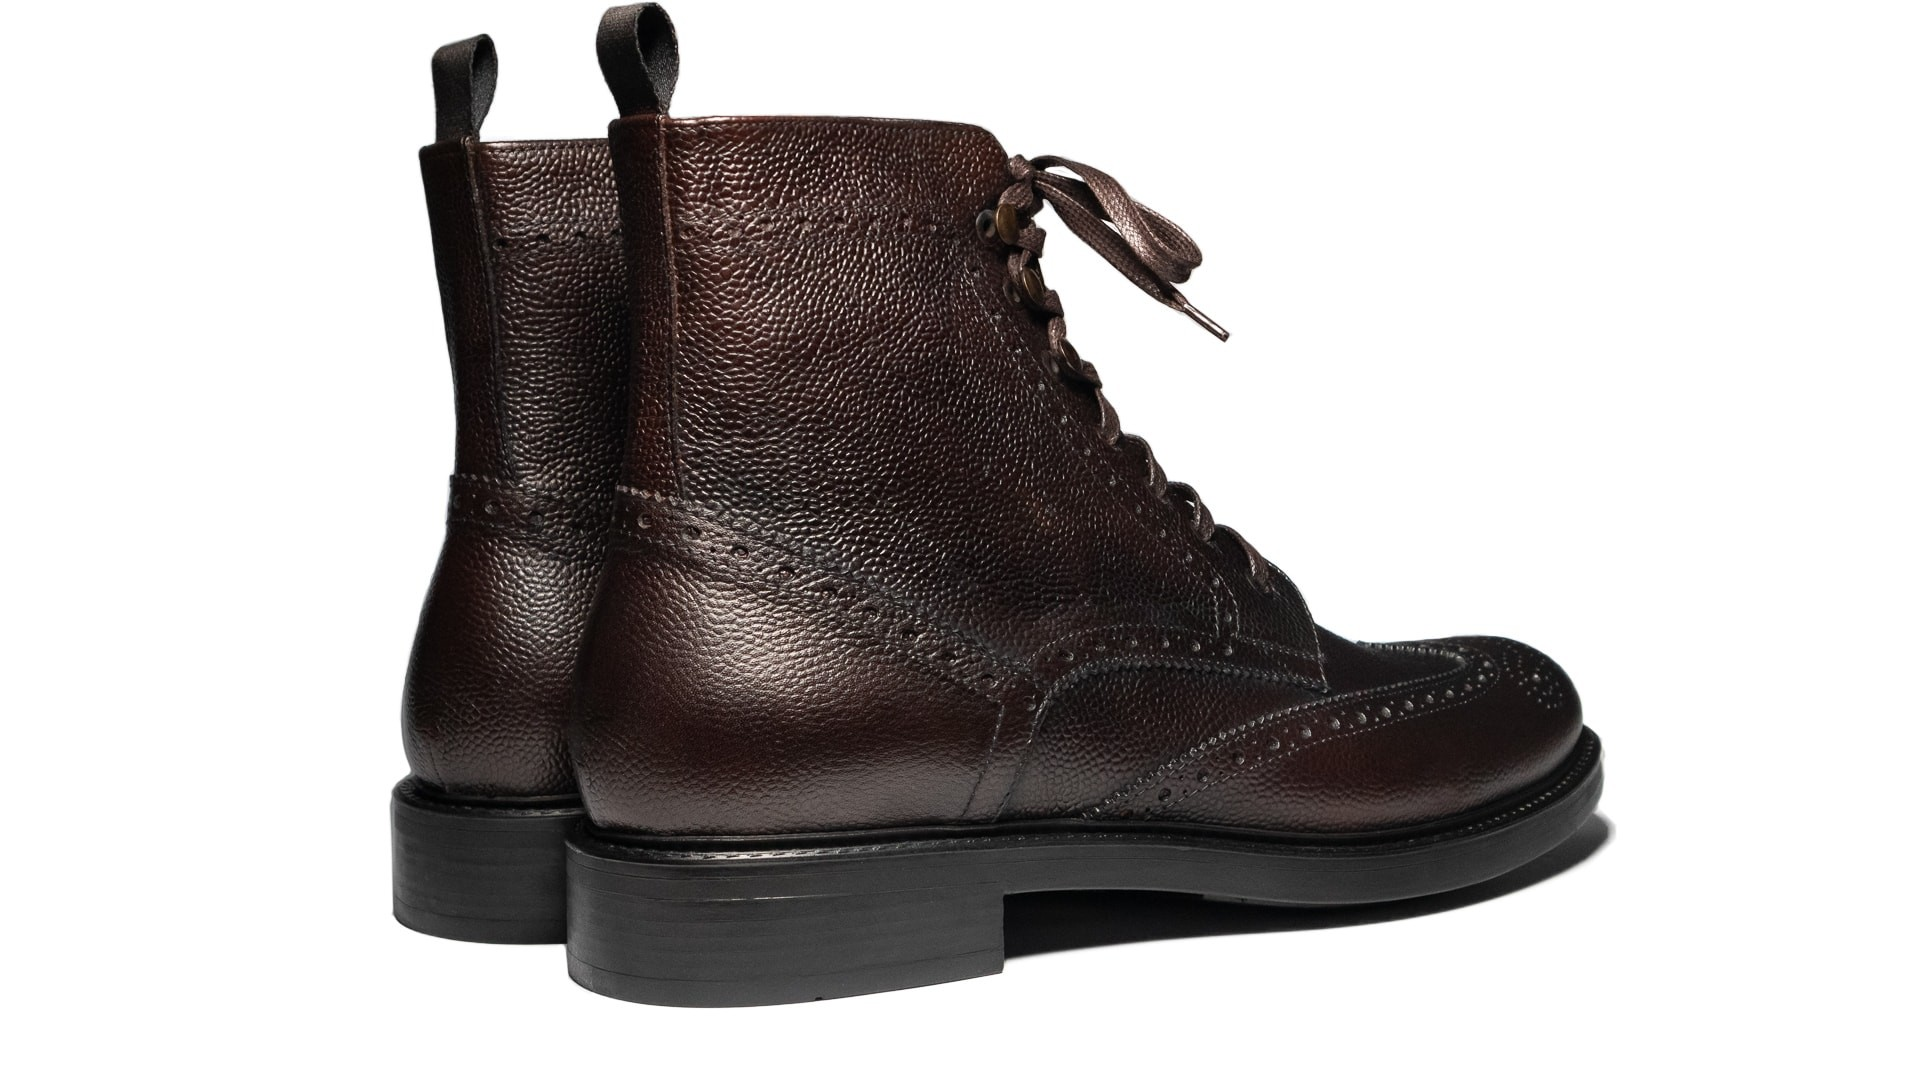 Brogue Boots Scotch Grain Testa di Moro